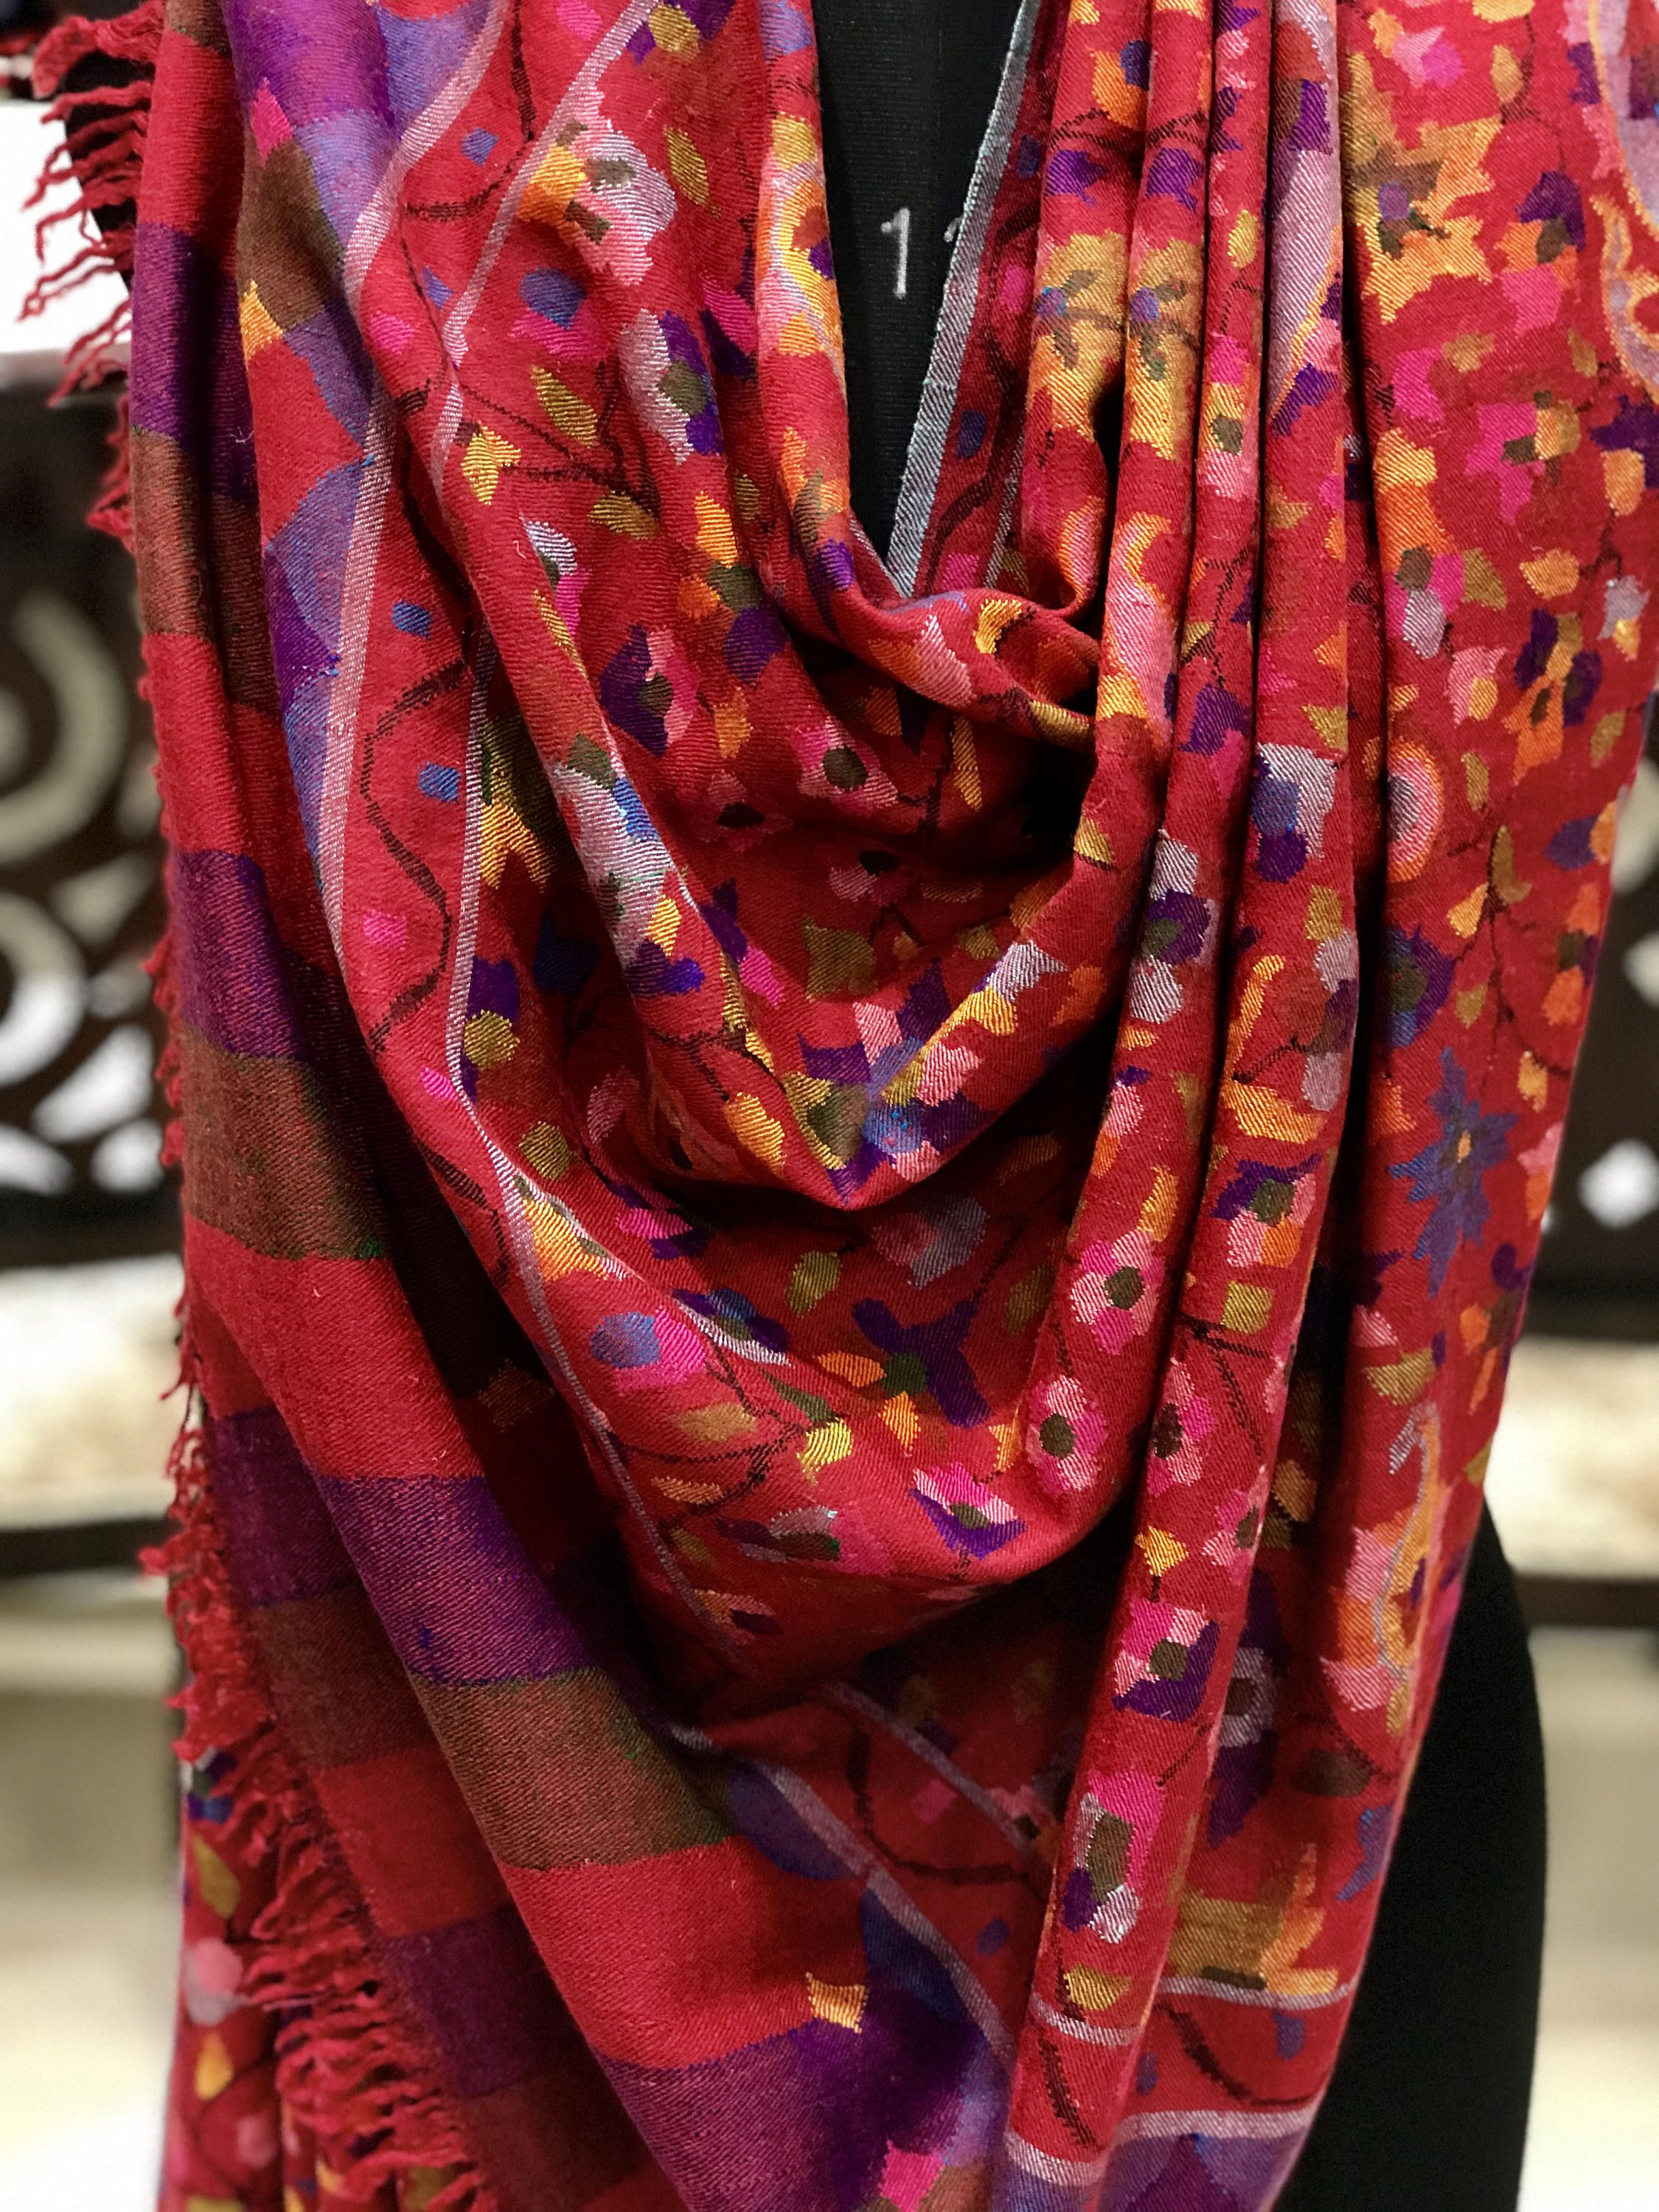 79a3feaf5 Pure Pashmina All Over Kani Shawl, Floral Design Red Kani Shawl/Wrap, Hand  Woven Art, Women Wrap, Kashmiri Kani Shawl, Girl Wrap, Kani Weave by ...